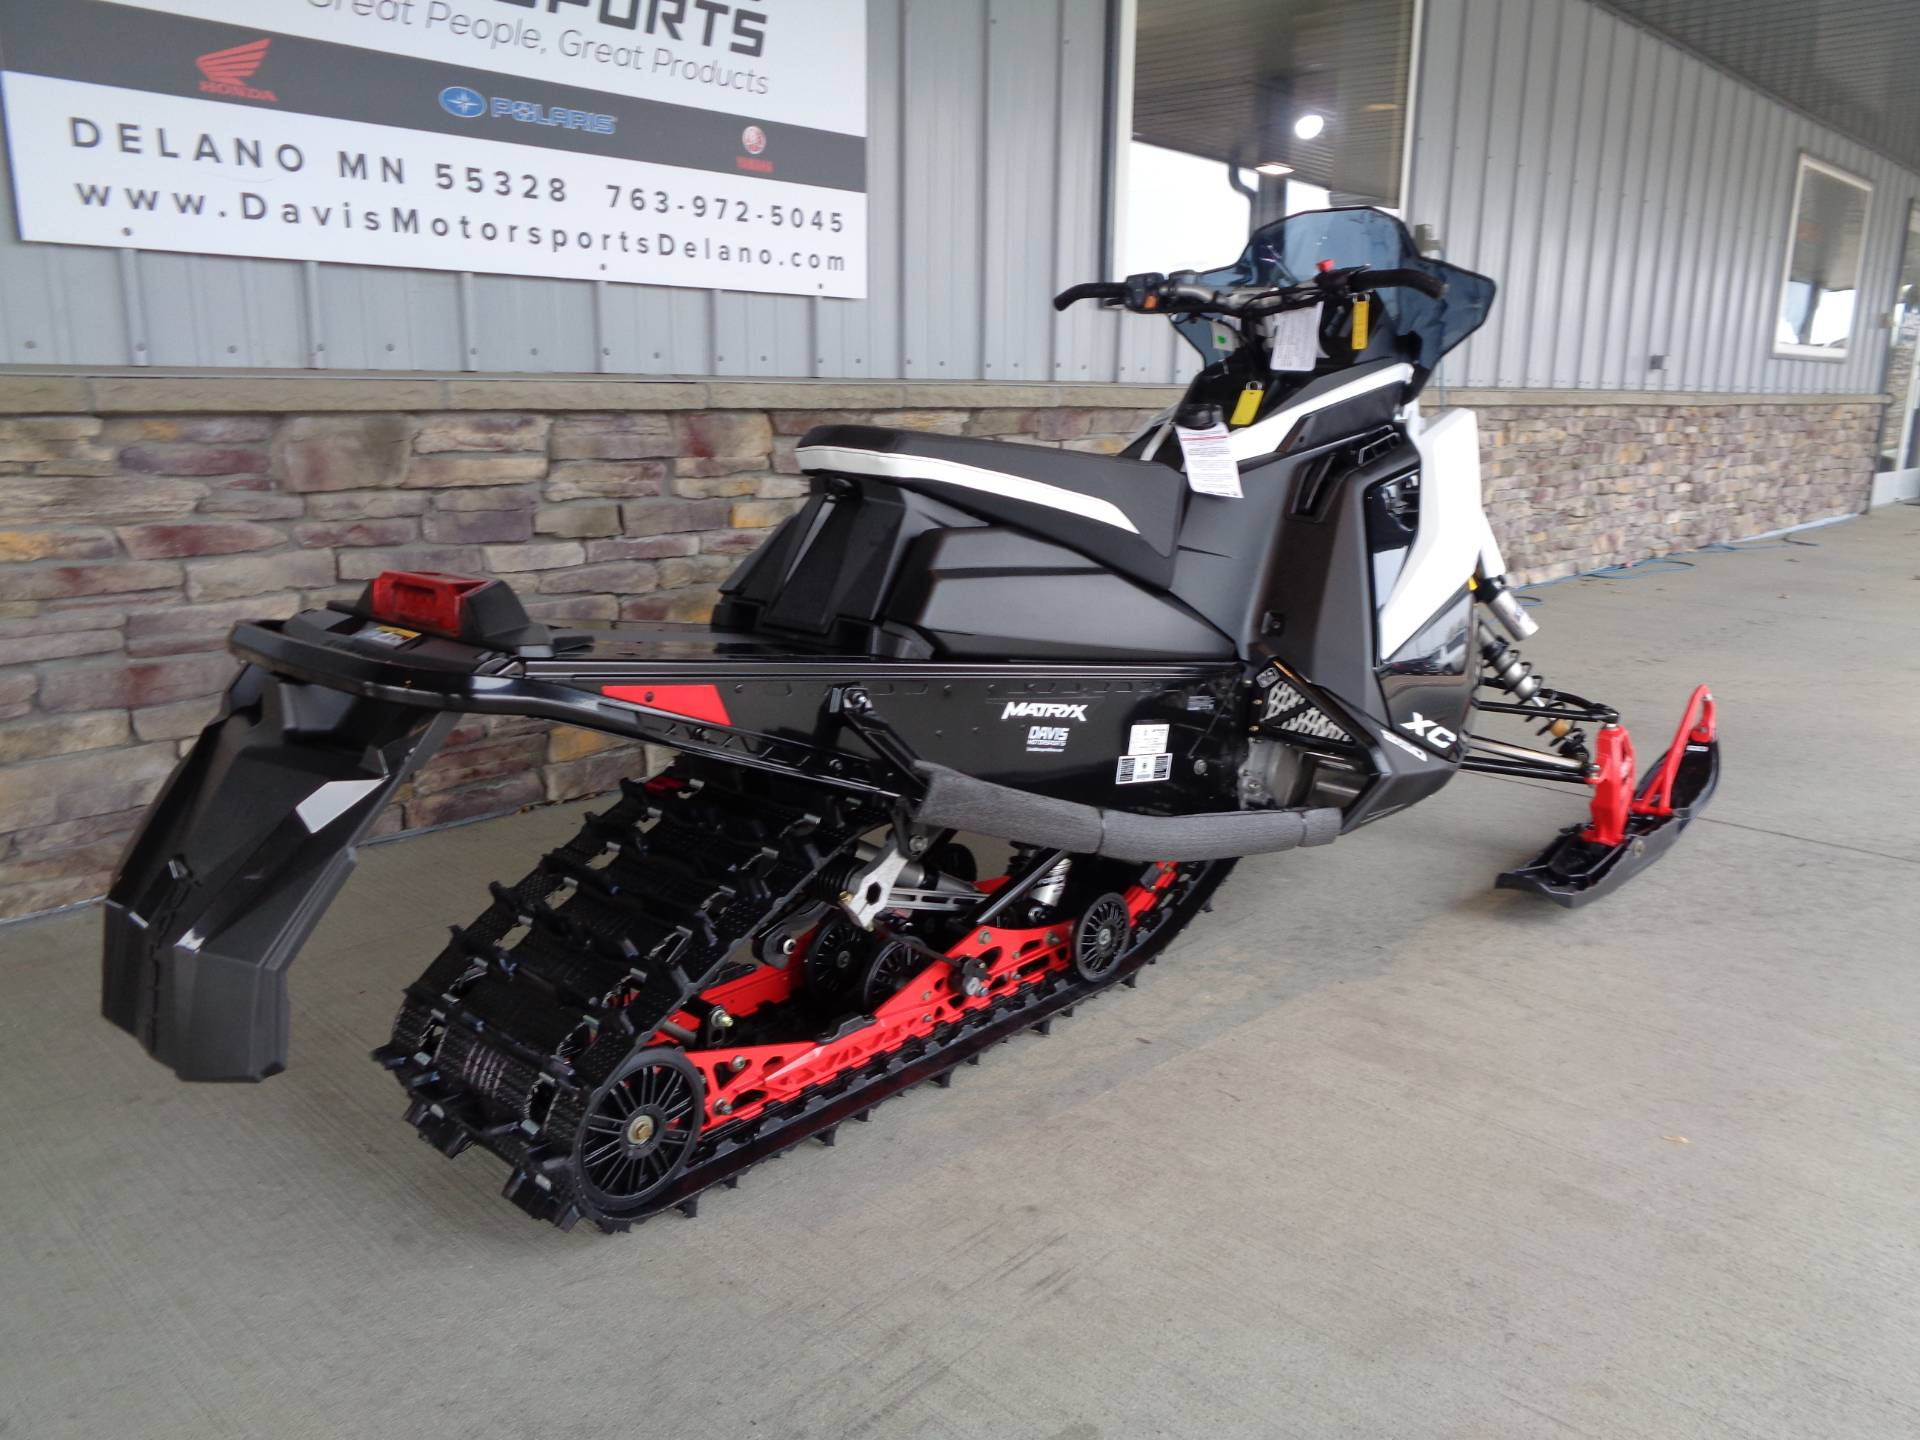 2021 Polaris 850 Indy XC 129 Launch Edition Factory Choice in Delano, Minnesota - Photo 5